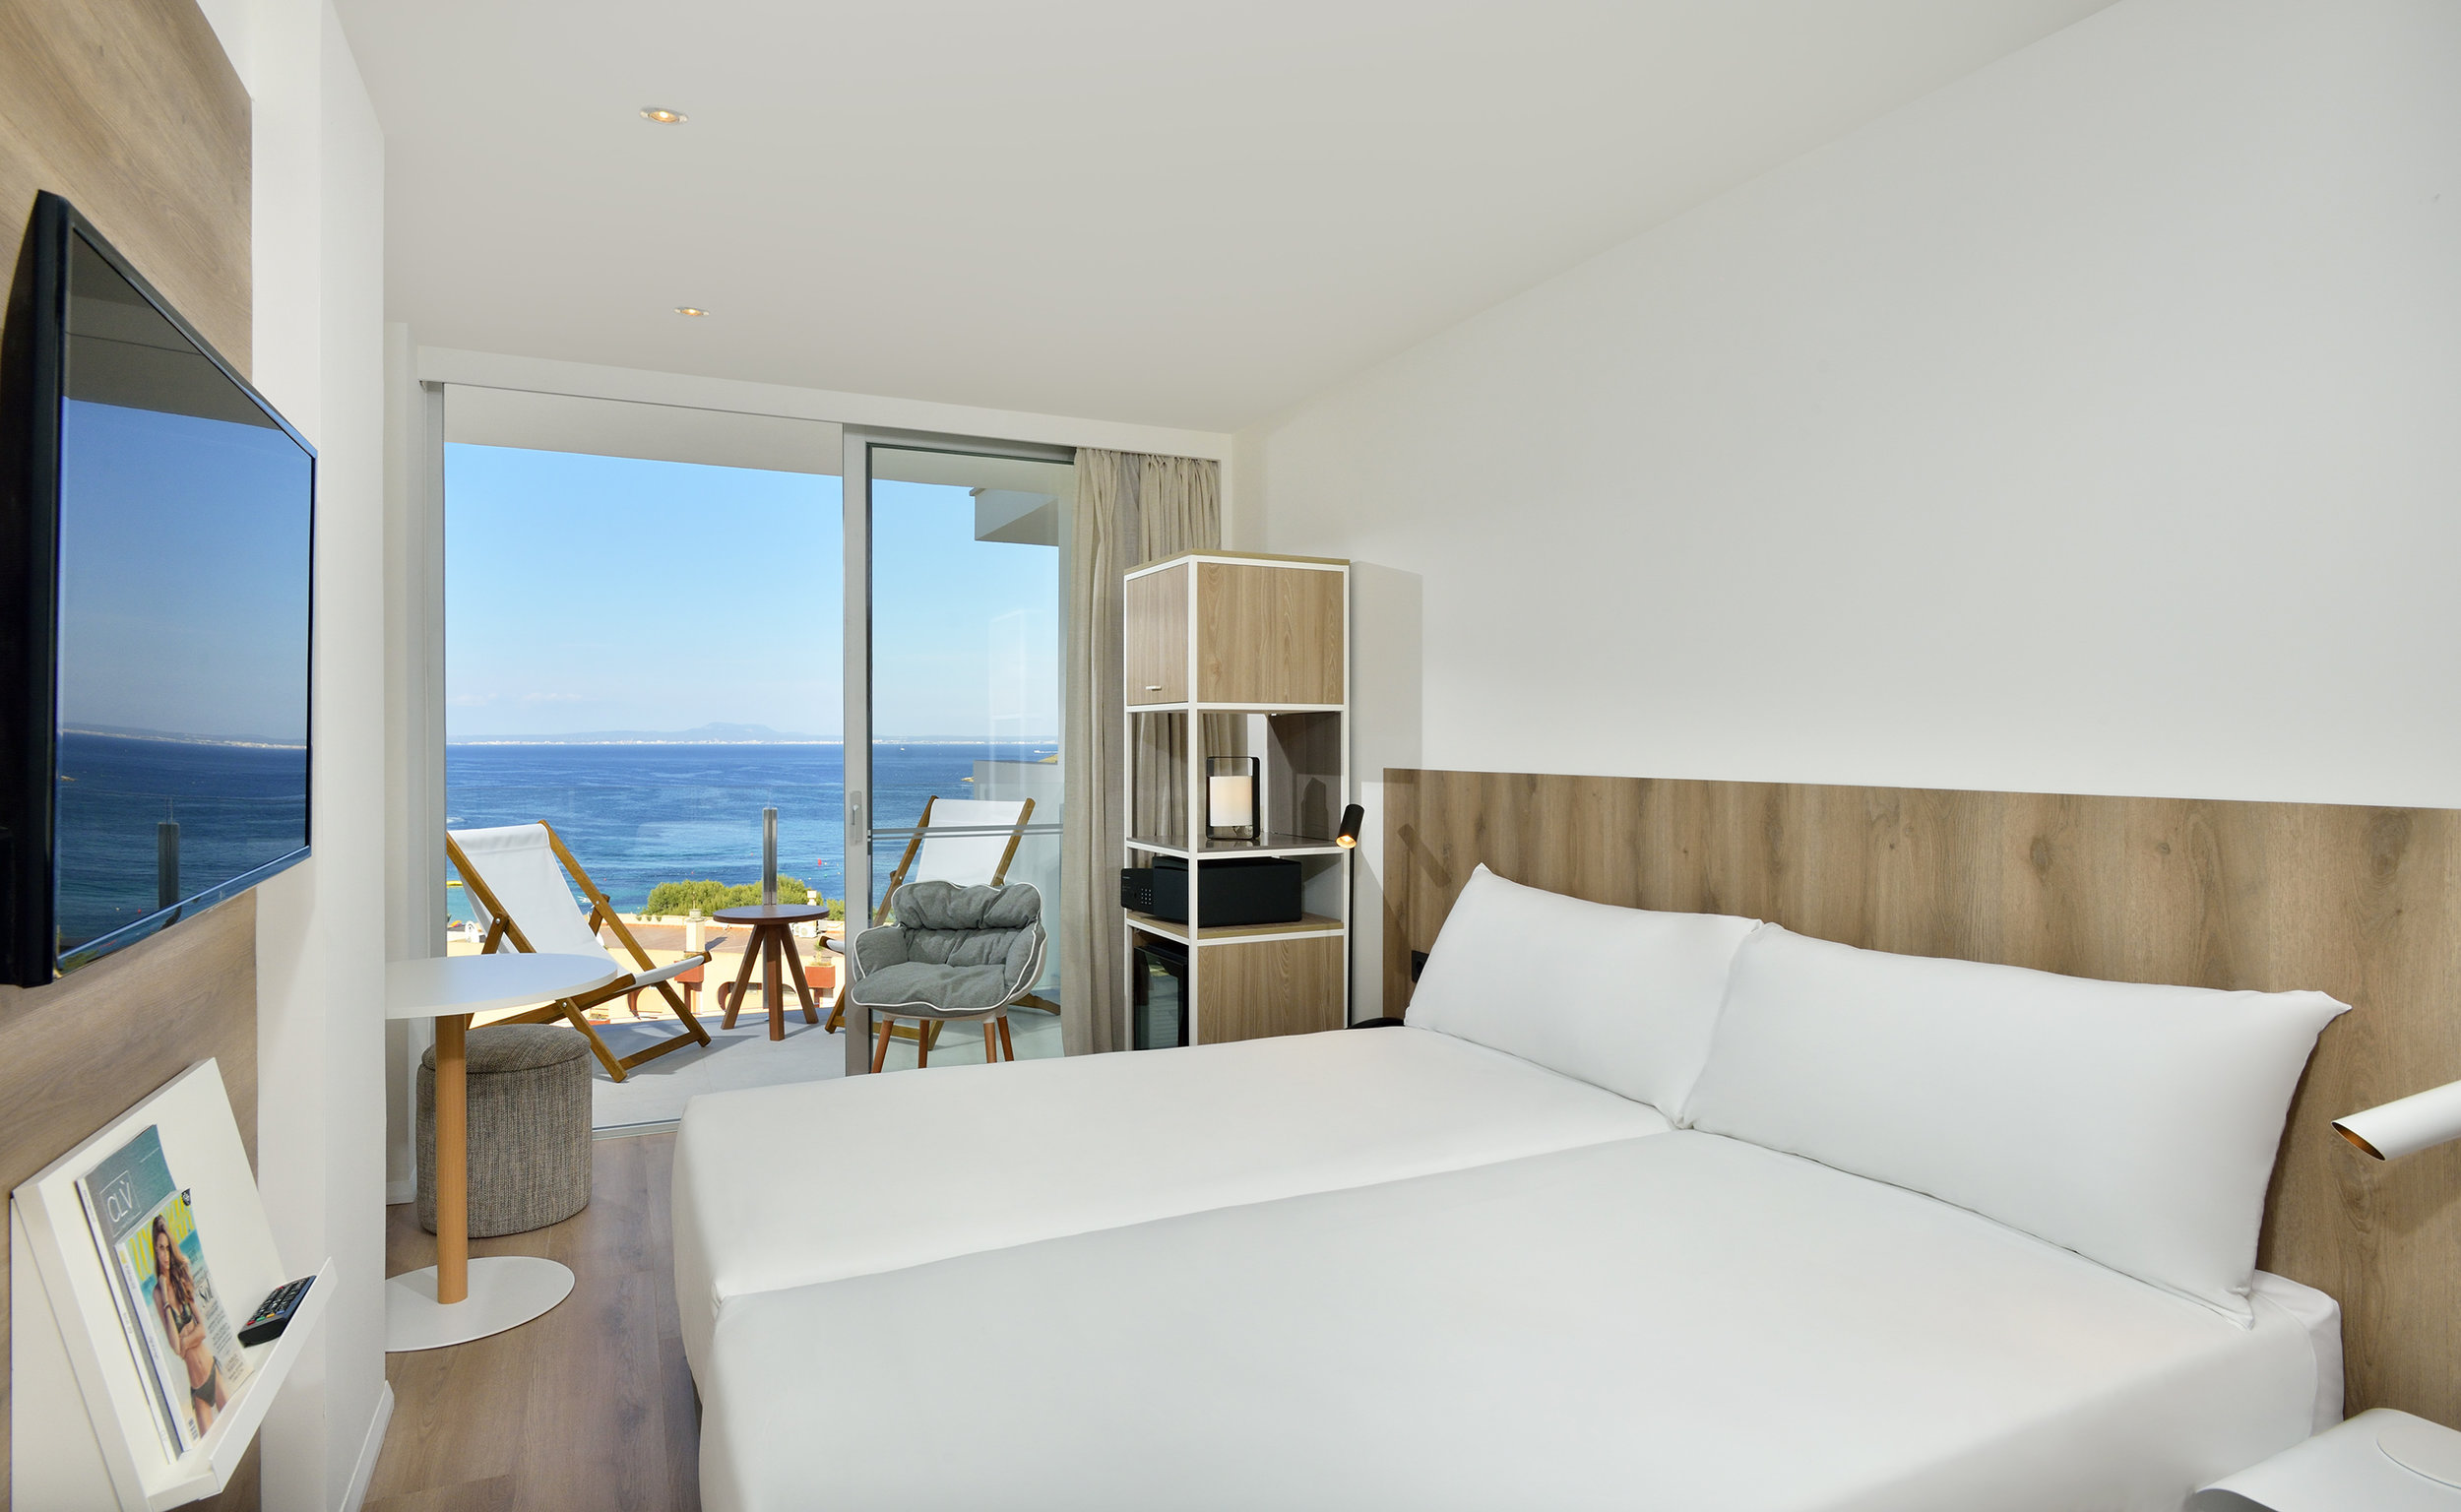 101aHotelCalviaBeachThePlaza-The_Plaza_Room_Sea_View.jpg